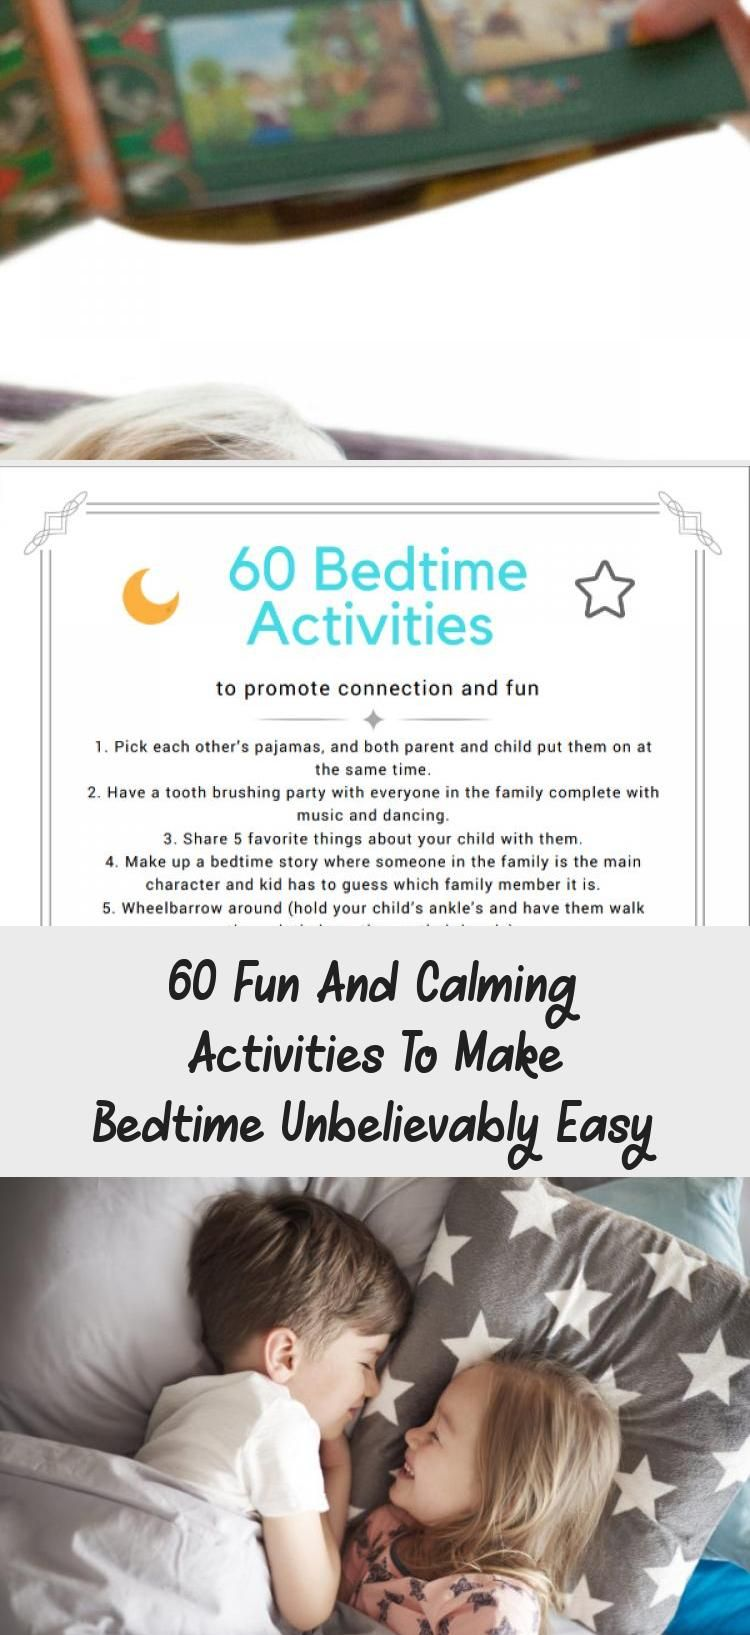 Bedtime struggles are common with kids. Learn the secret to getting your child asleep easier and grab a free printable list of calming bedtime routine activities.   #kids #bedtime #kidssleep #bedtimeroutine #sleephelpkids #parenting #babycareBrand #babycareDesign #babycareProducts #babycareHospital #babycareFunny